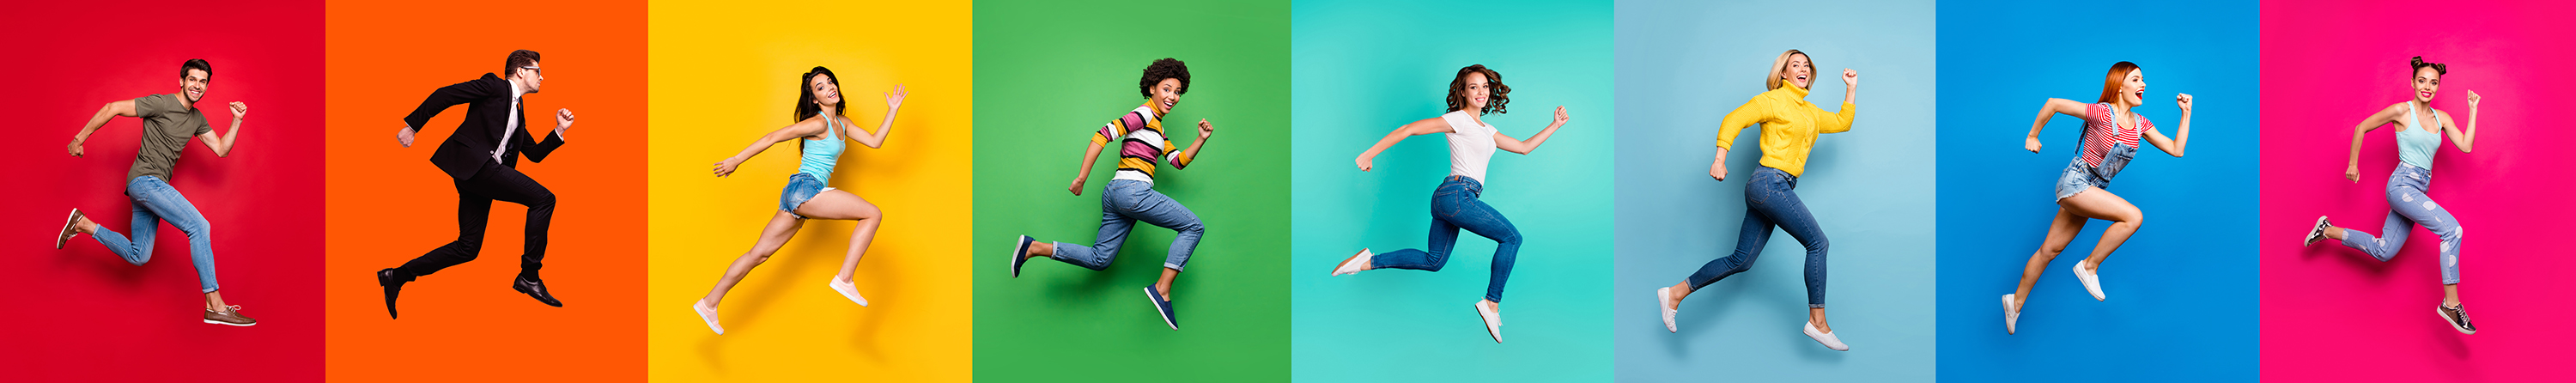 A colourful image showing 7 young people mid air as they run